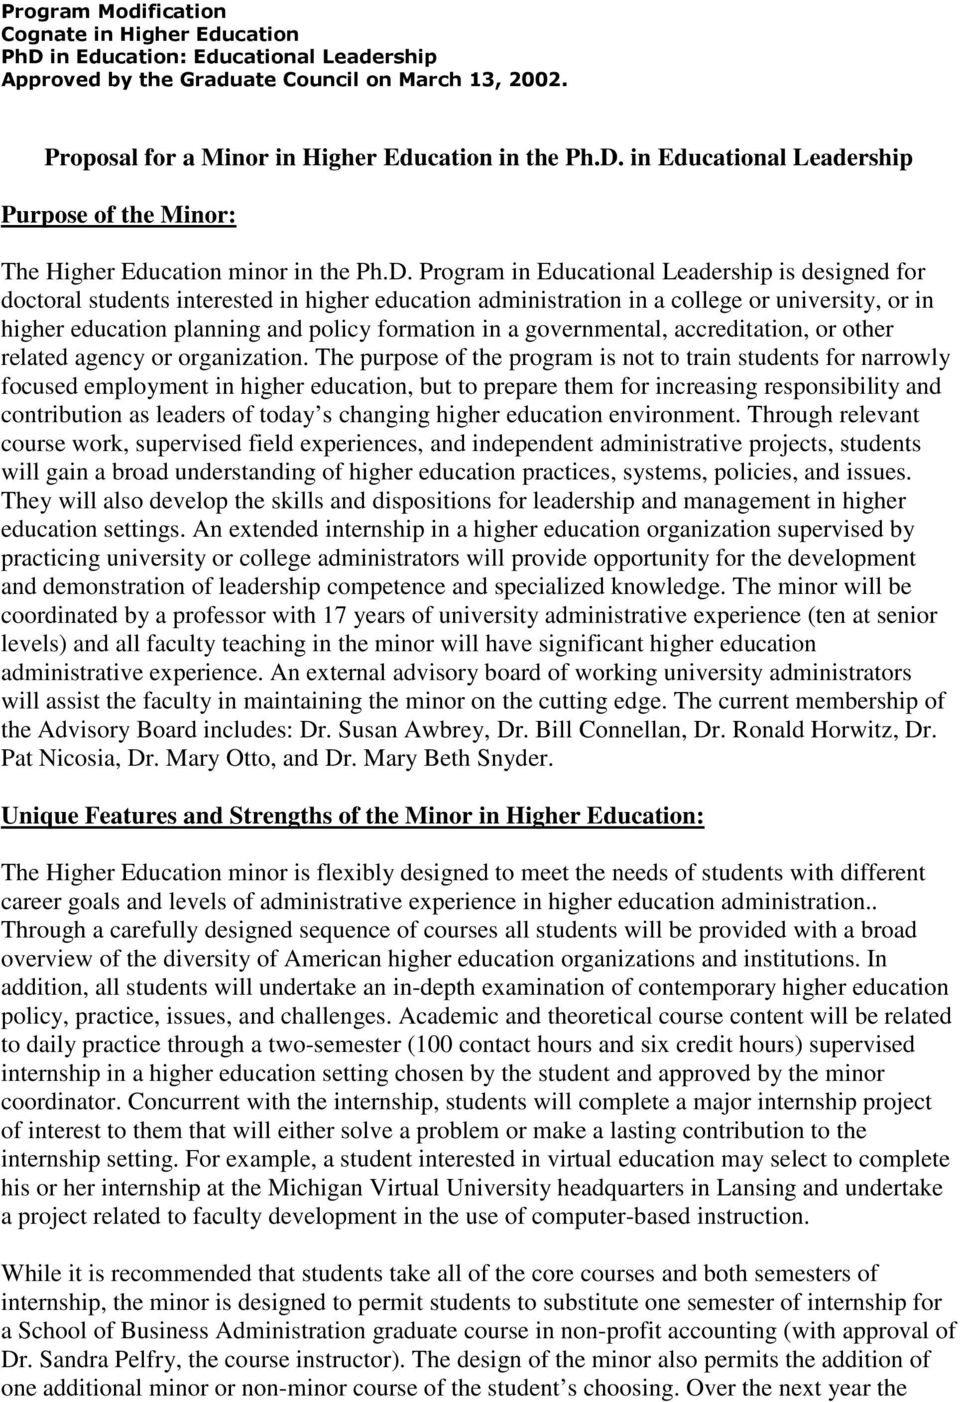 Program in Educational Leadership is designed for doctoral students interested in higher education administration in a college or university, or in higher education planning and policy formation in a